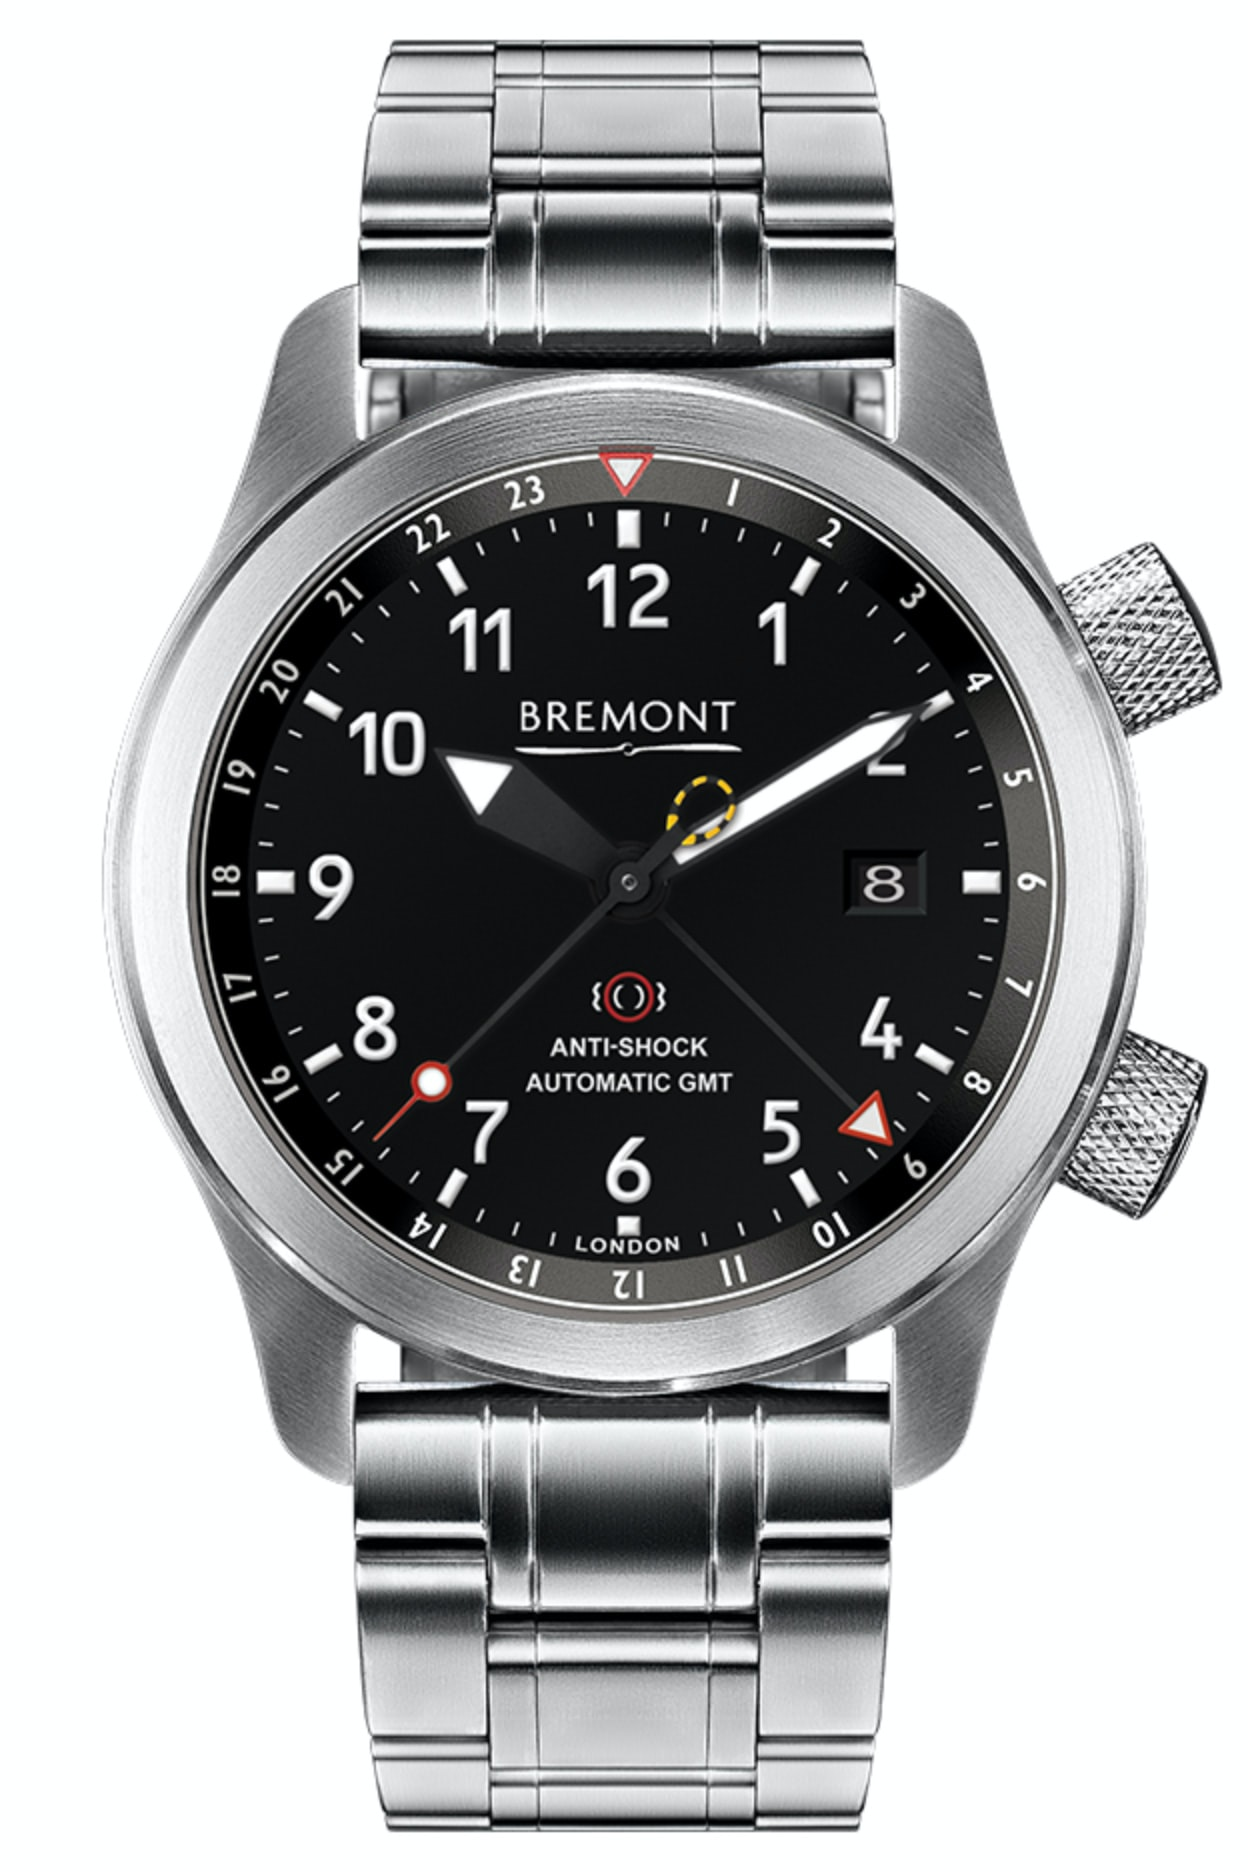 A Week On The Wrist: The Tudor Black Bay GMT bremont